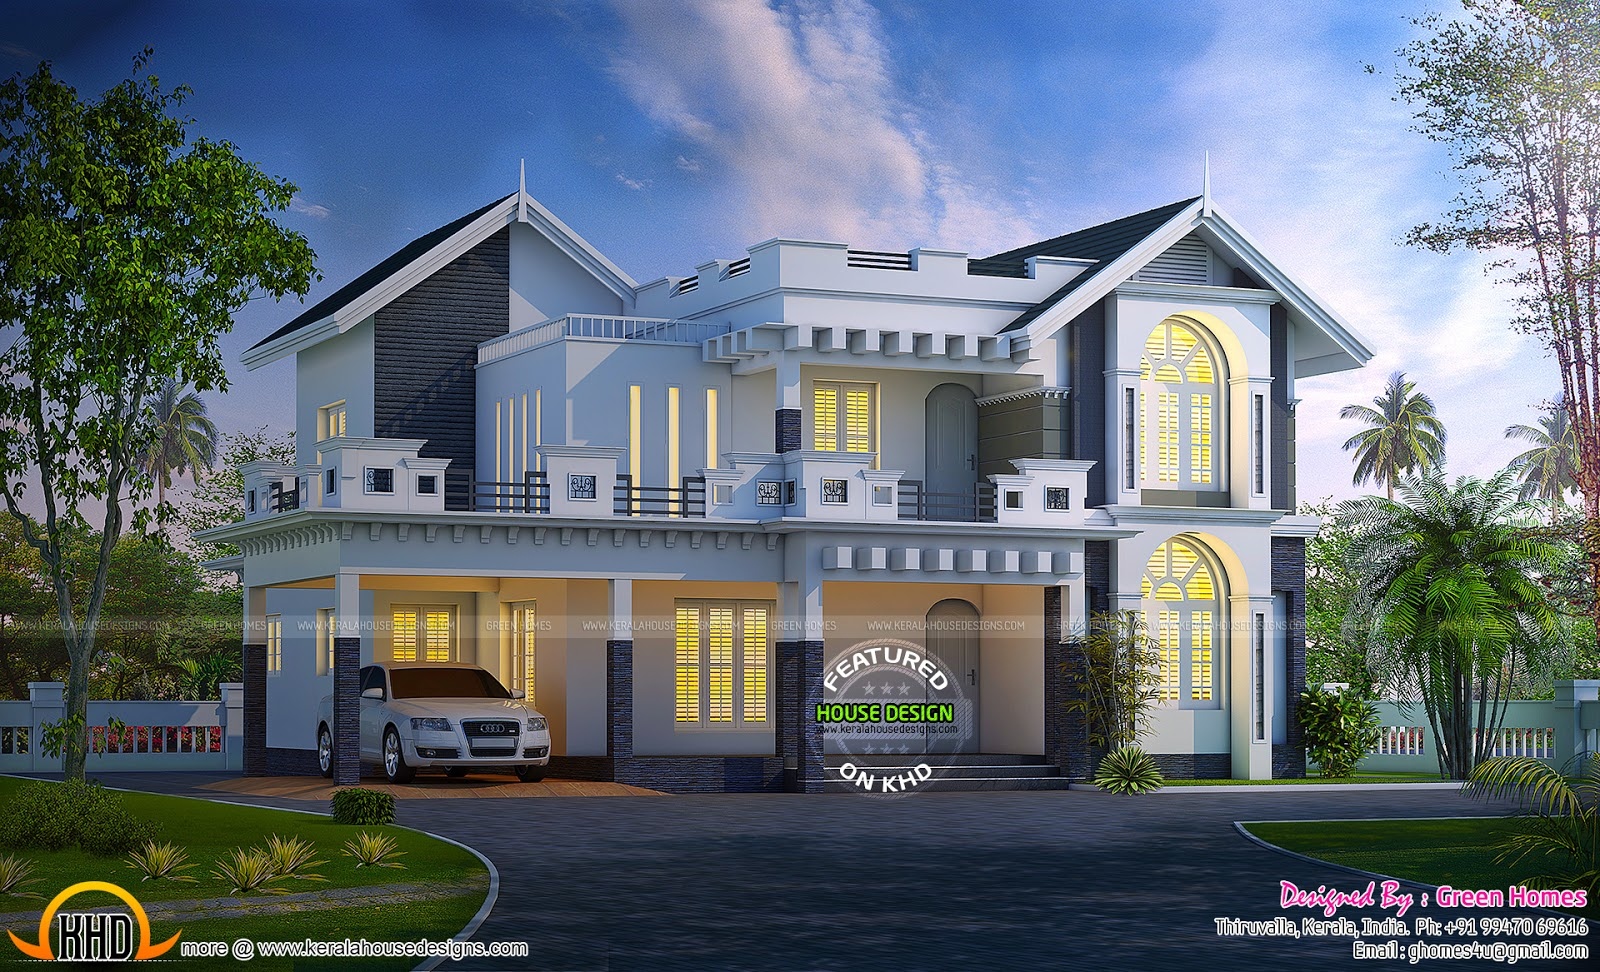 New kerala house plans for june 2015 keralahousedesigns for New home plans 2015